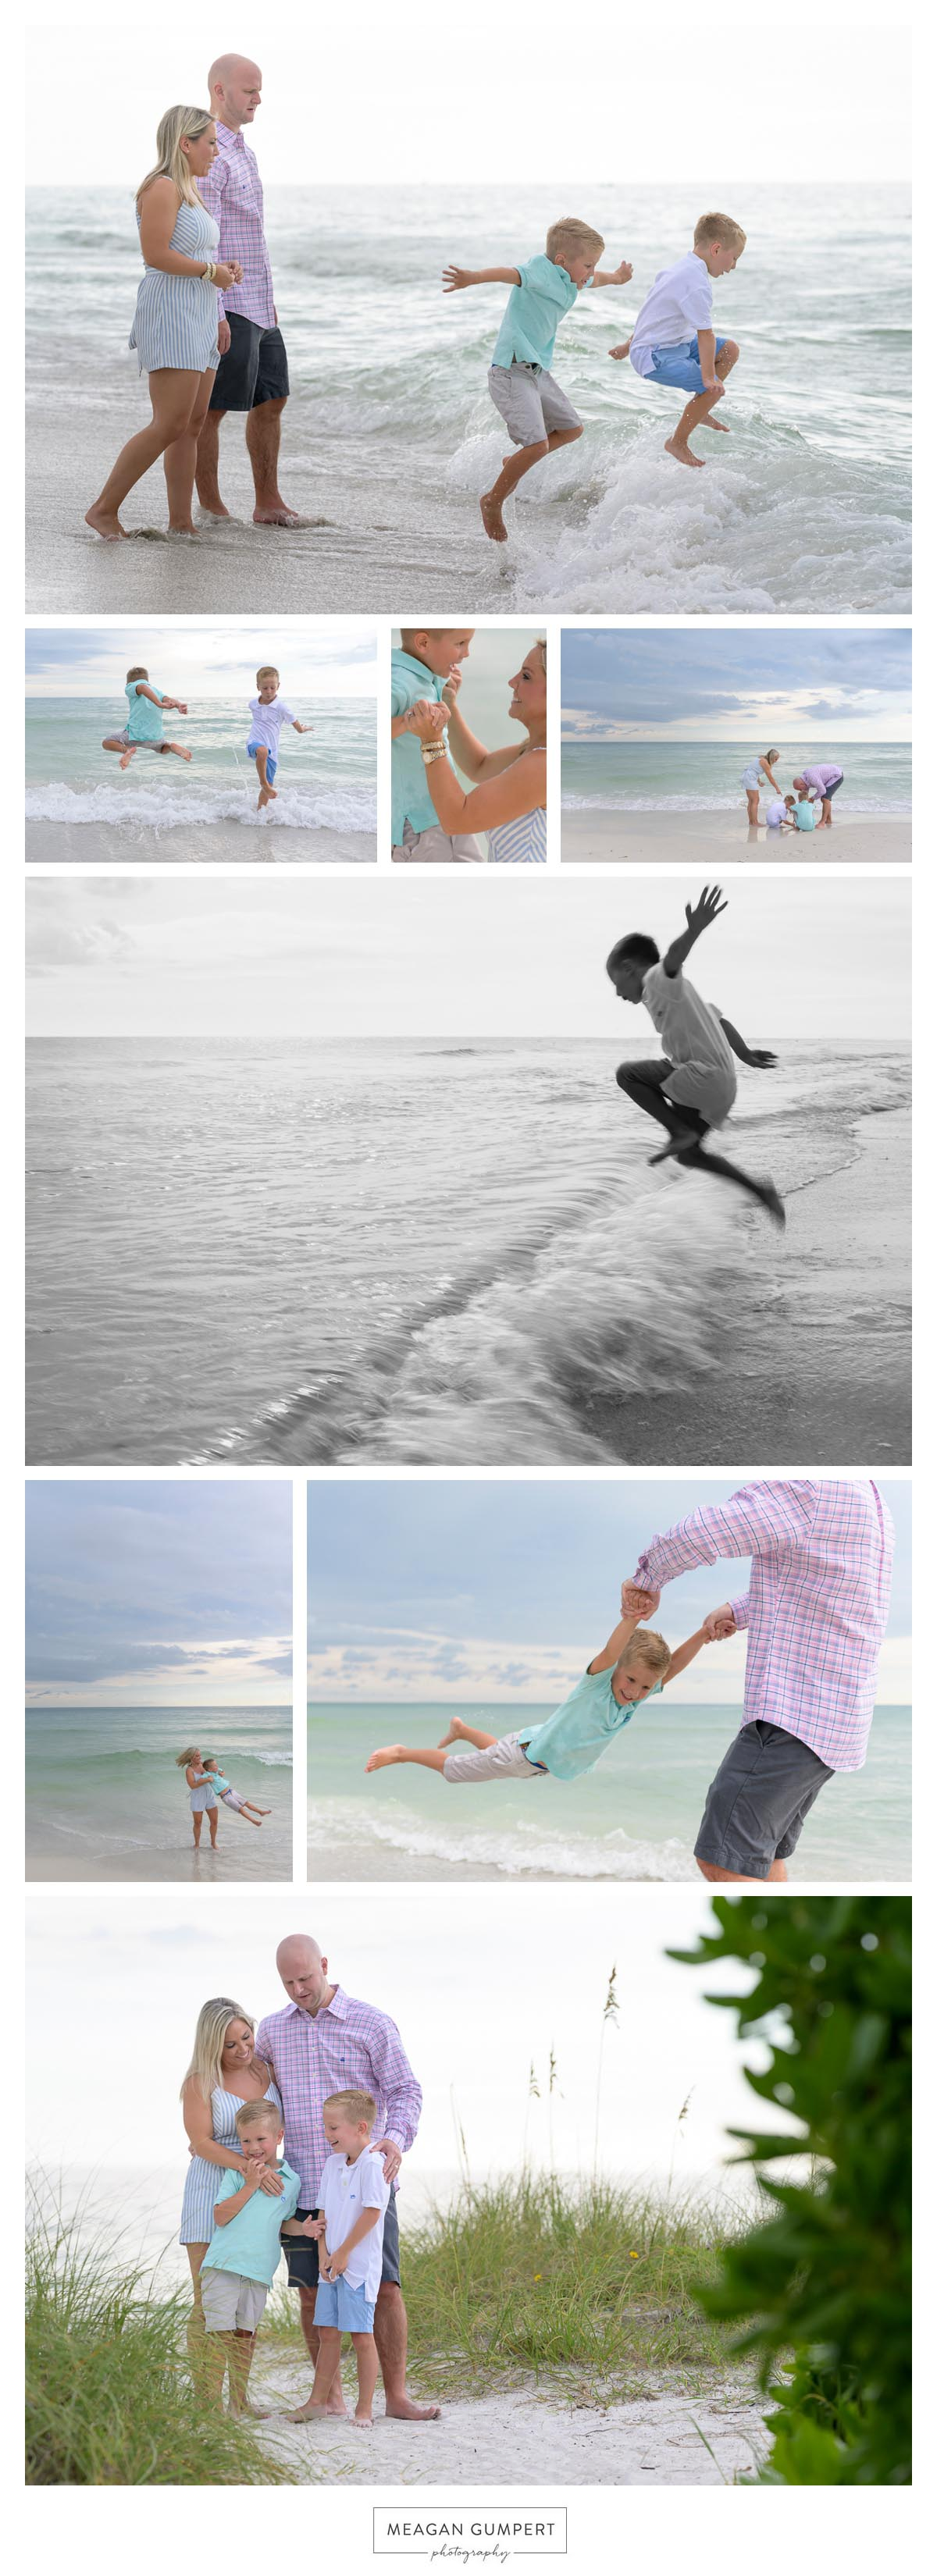 Lifestyle family beach photography by Meagan Gumpert